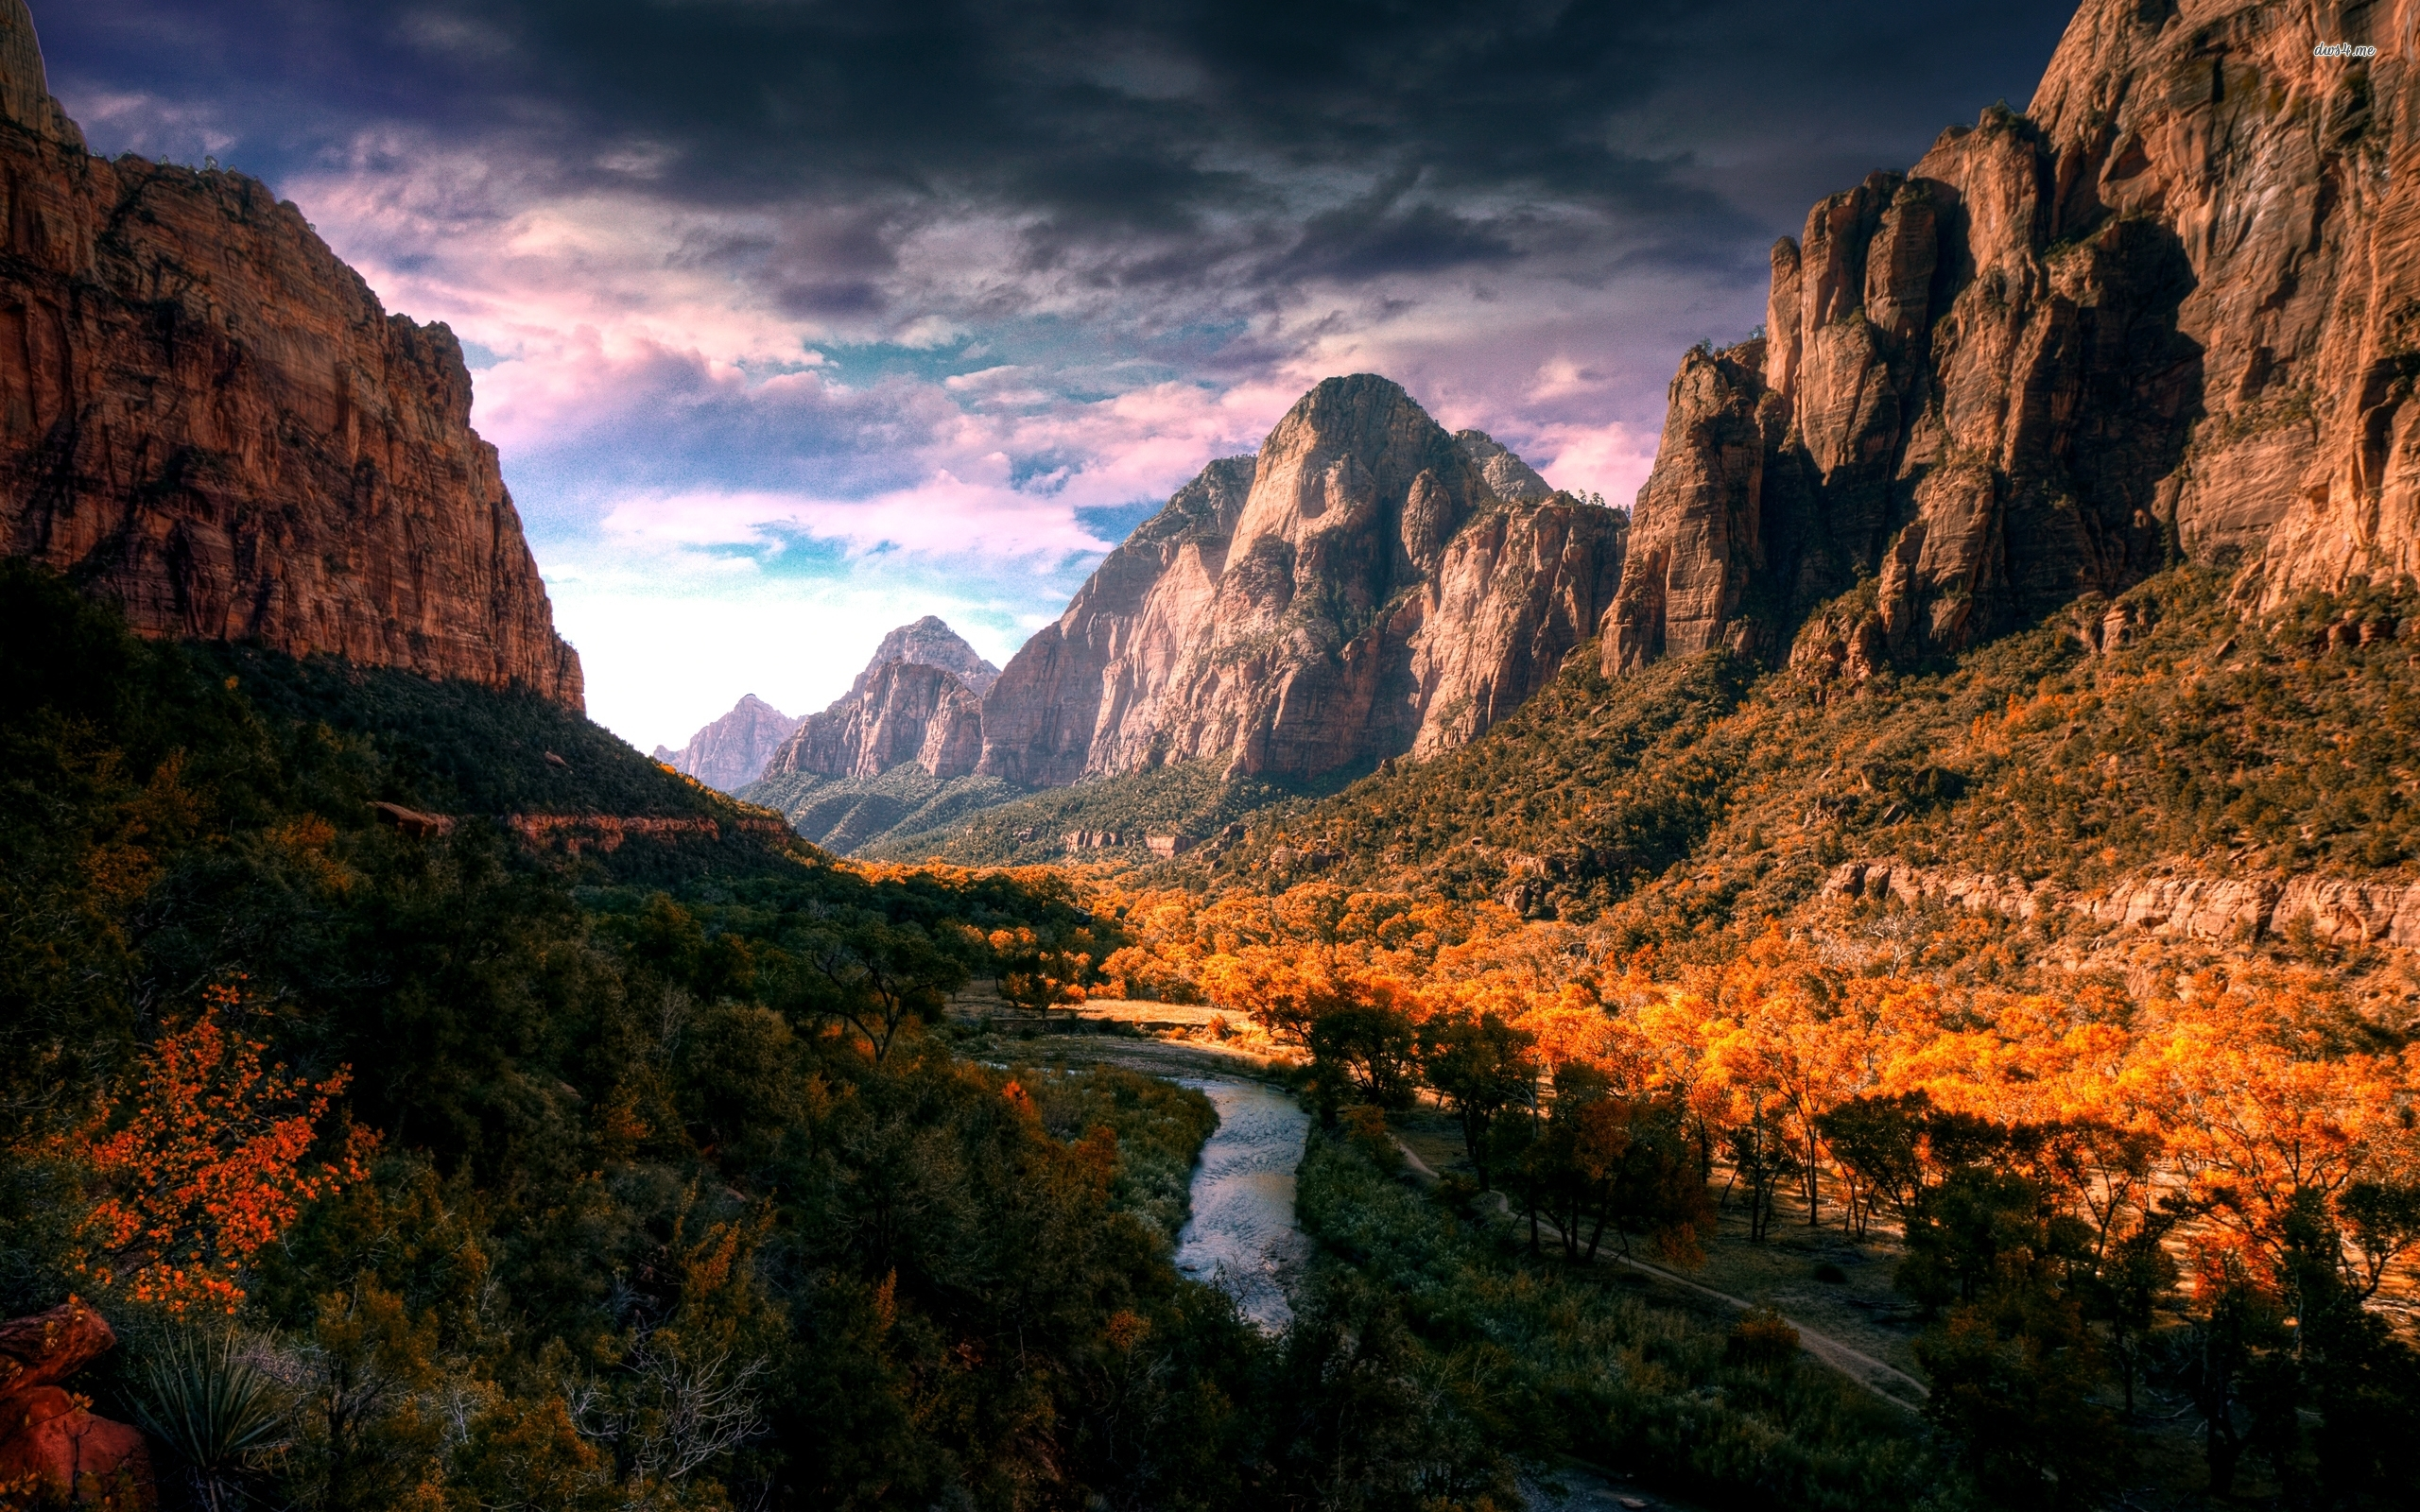 zion national park wallpaper nature wallpapers 38017